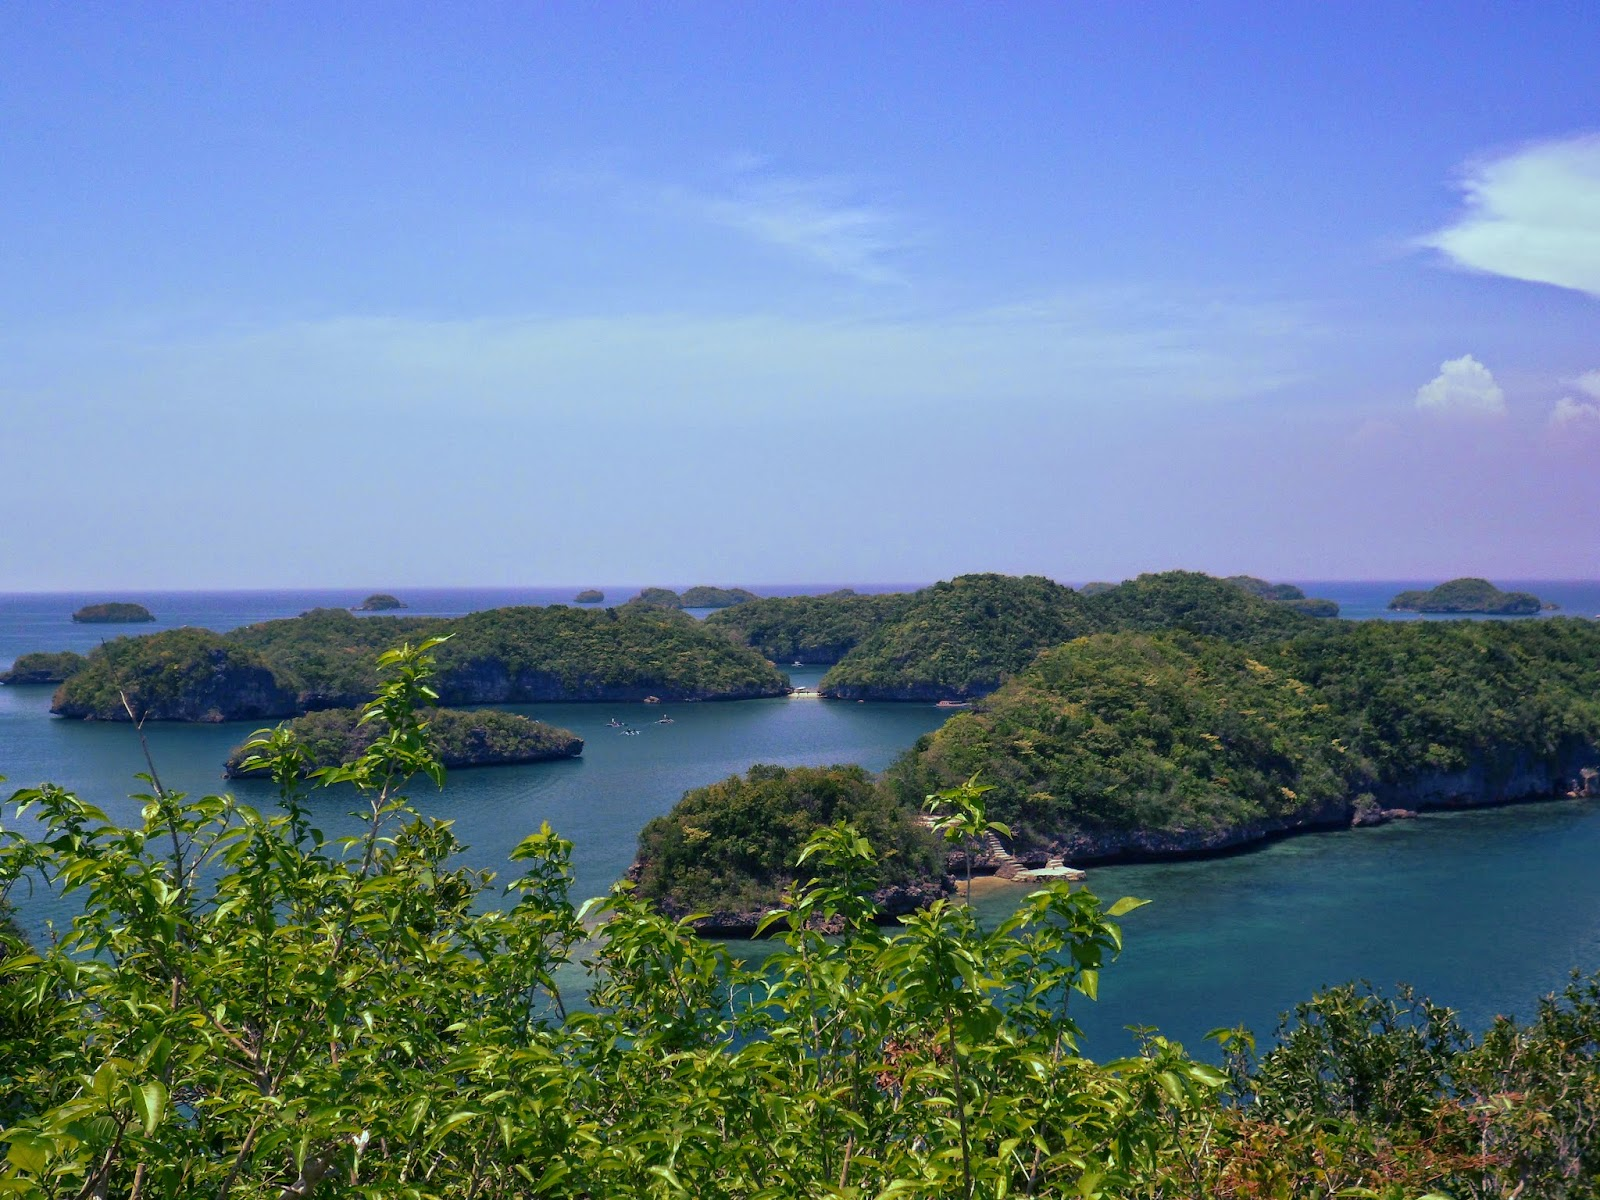 Governor's Island at Hundred Islands